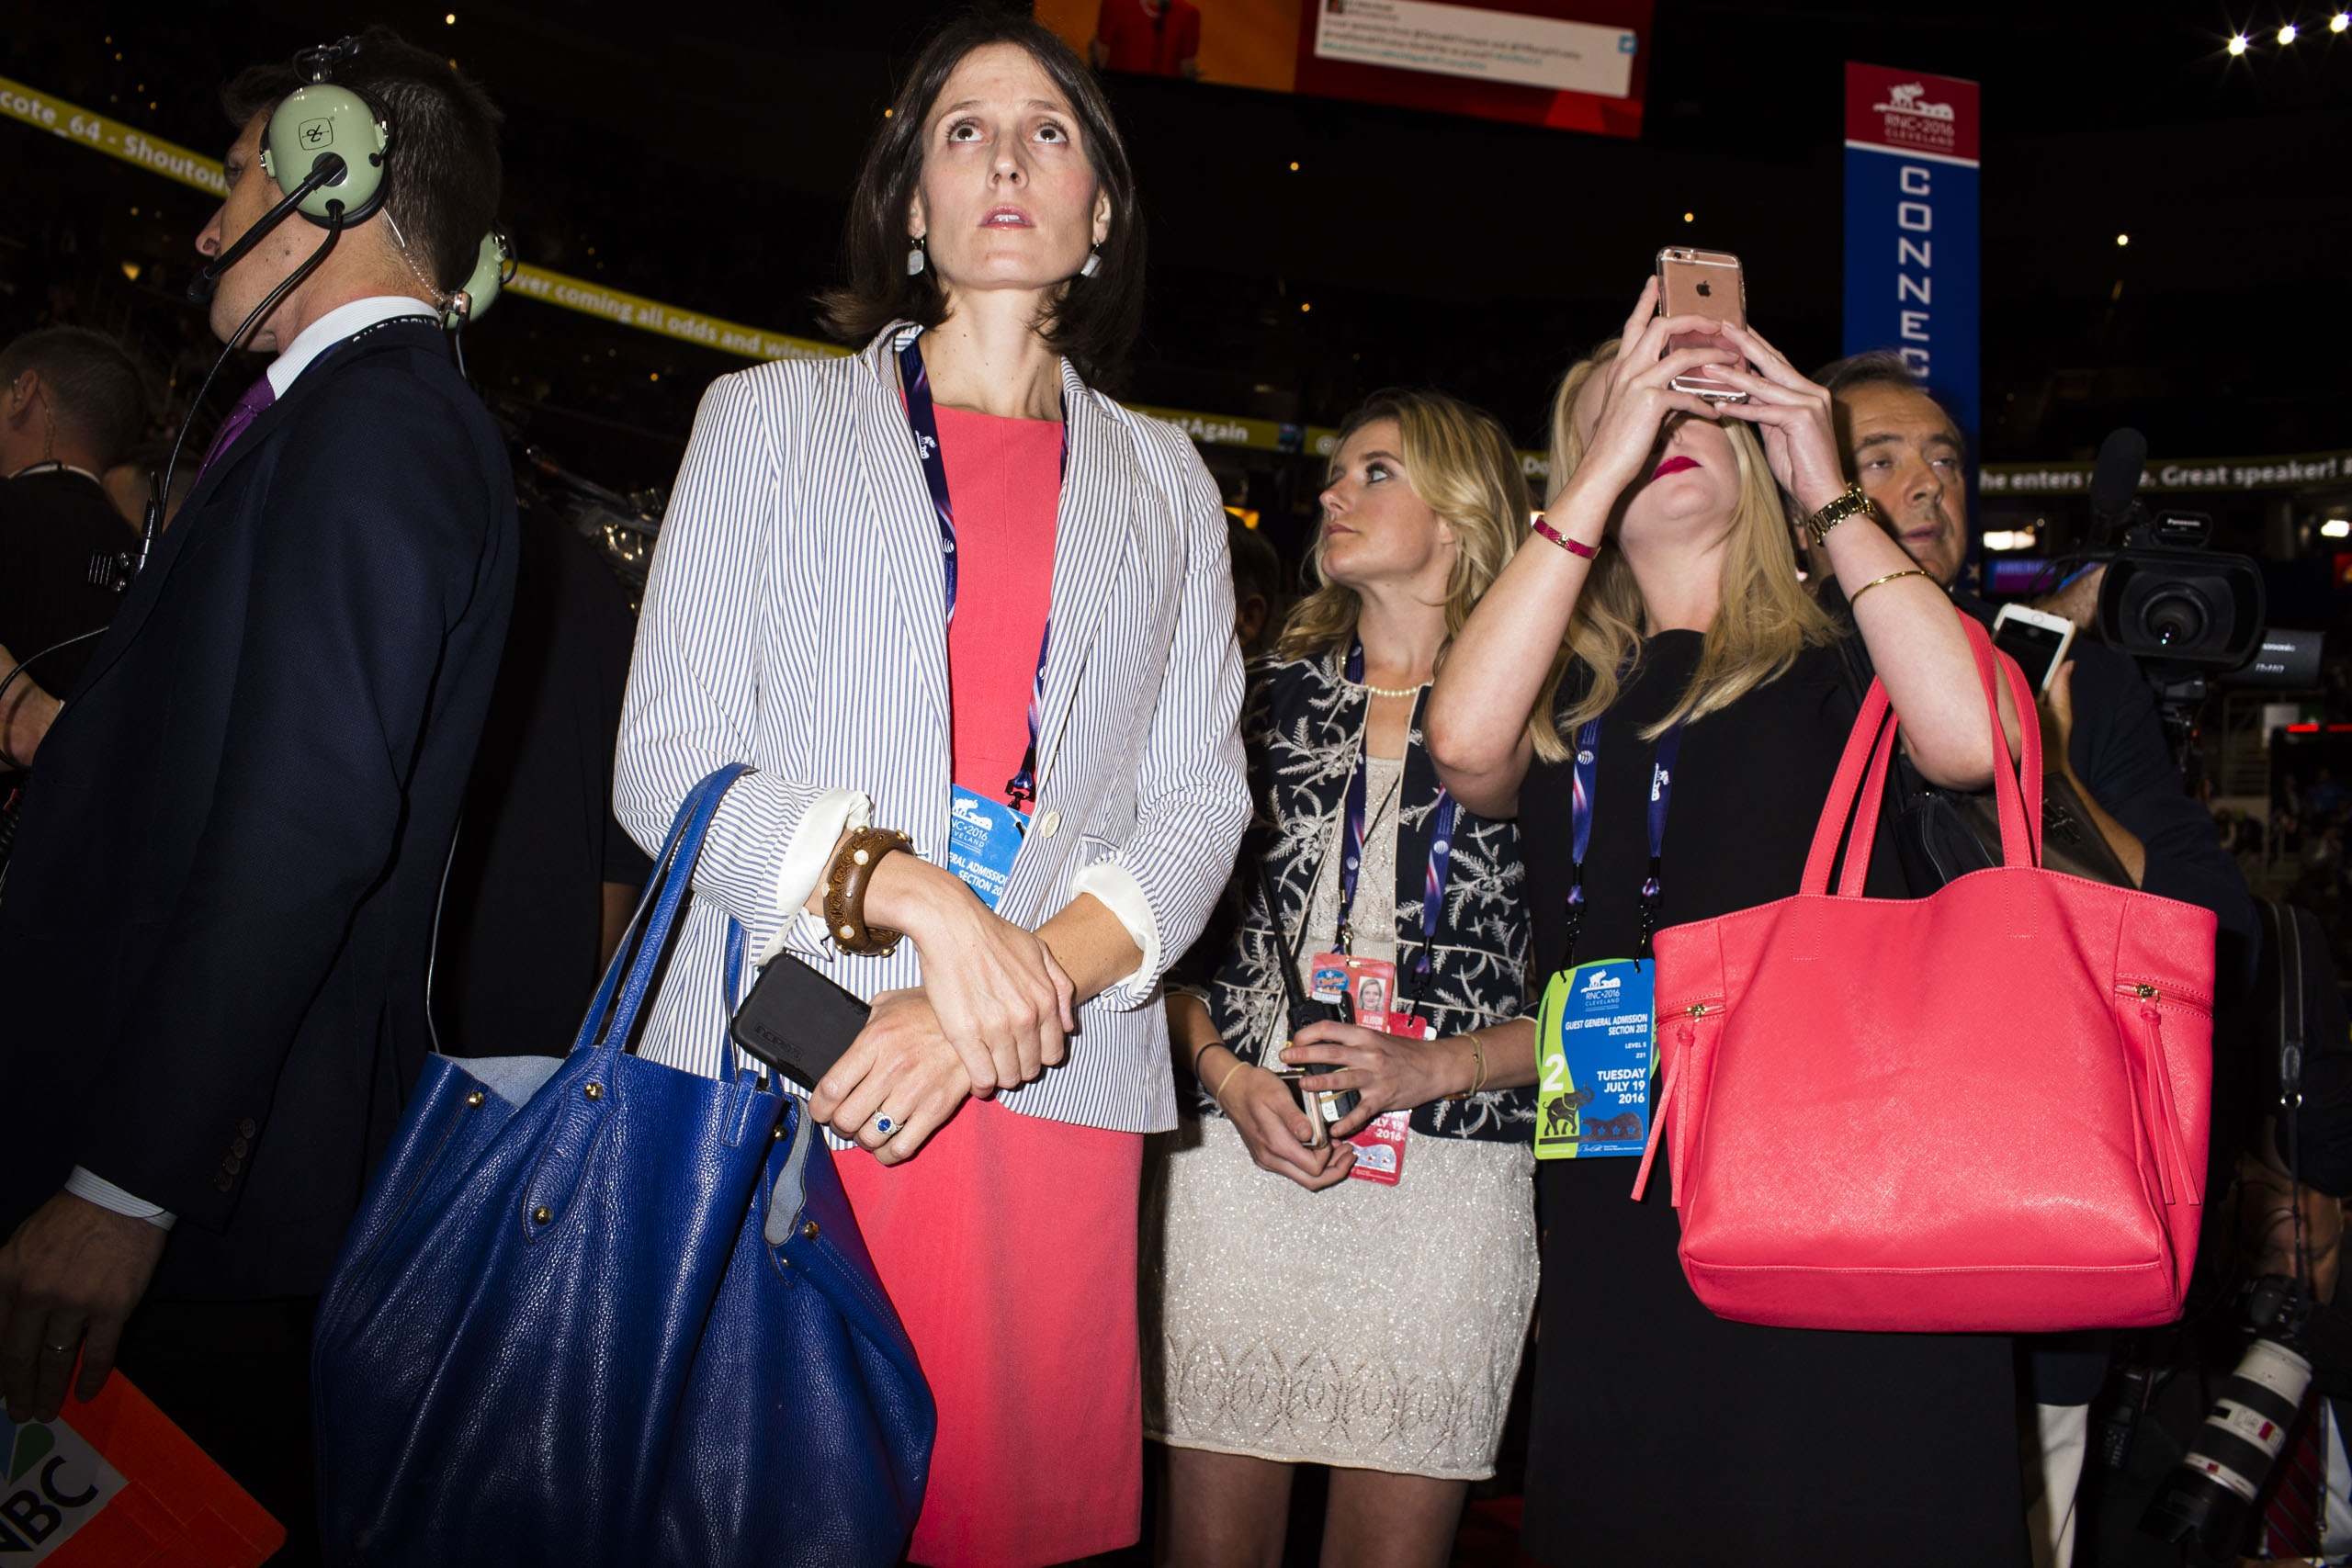 Oversized, colorful handbags are spotted on the floor of the Republican National Convention in Cleveland on Tuesday, July 19, 2016.